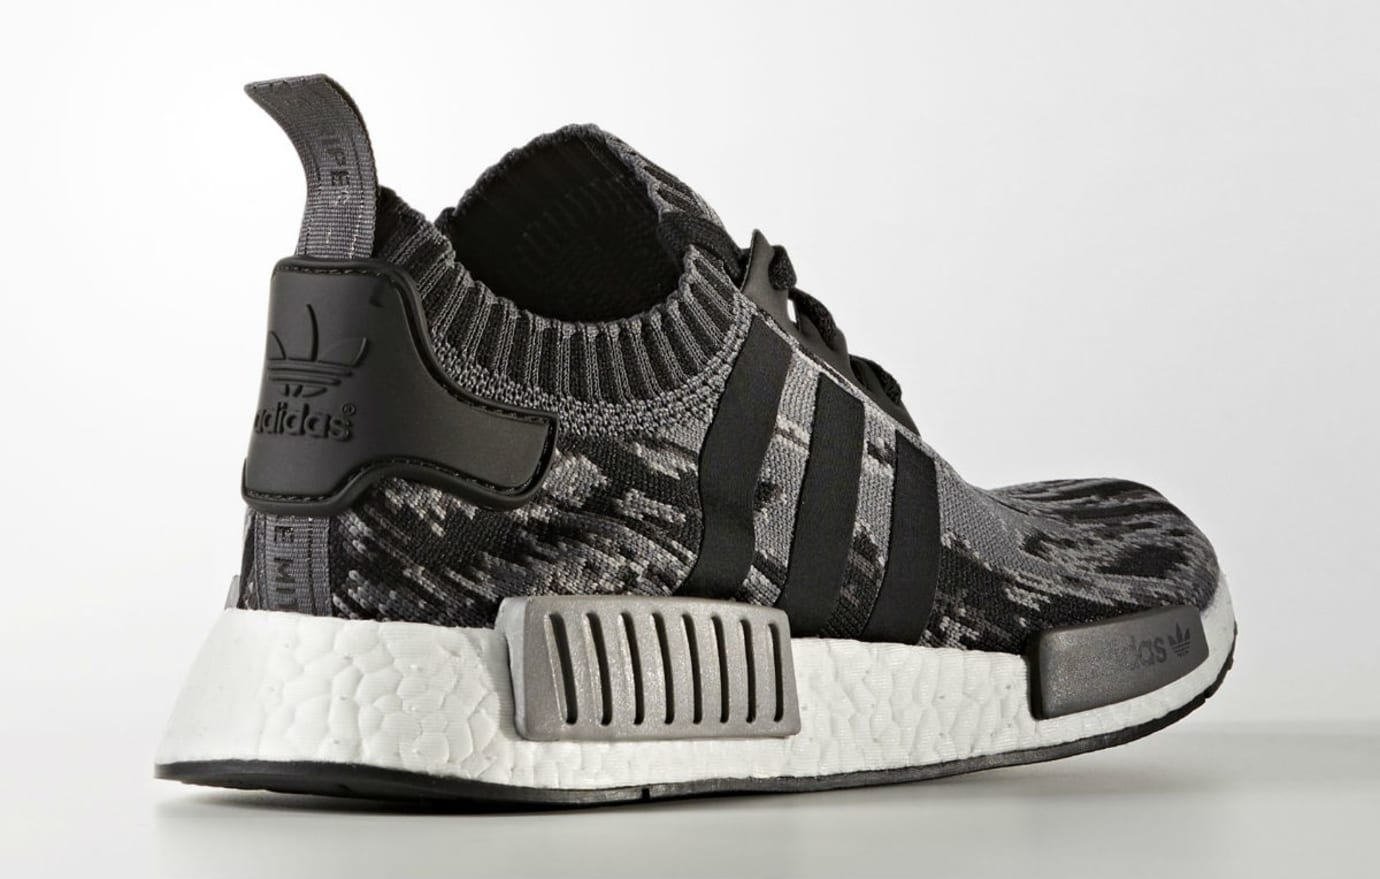 48739ebe2a1 ... ireland adidas nmd r1 primeknit glitch camo core black grey three  release date lateral bz0223 9e03f